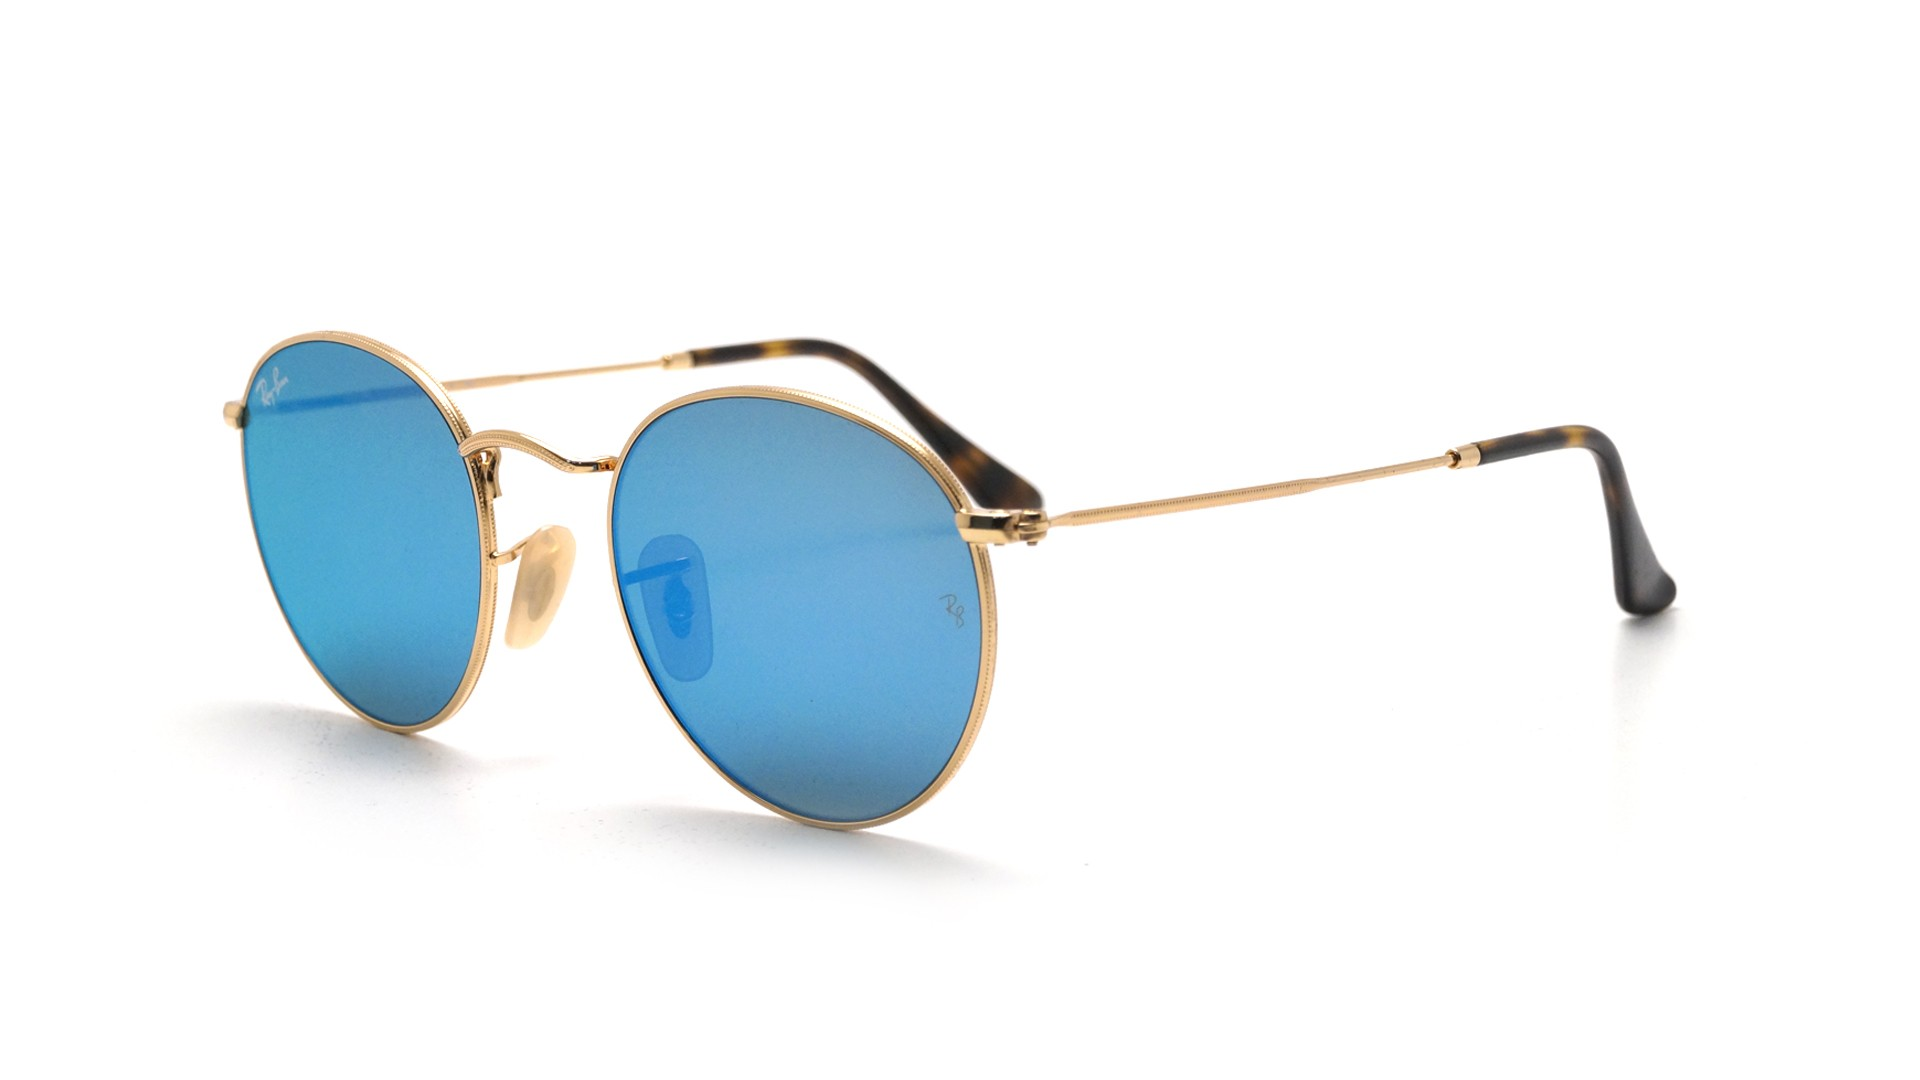 88b119432de Sunglasses Ray-Ban Round Metal Round Flat Lenses Gold RB3447N 001 9O 50-21  Medium Flash